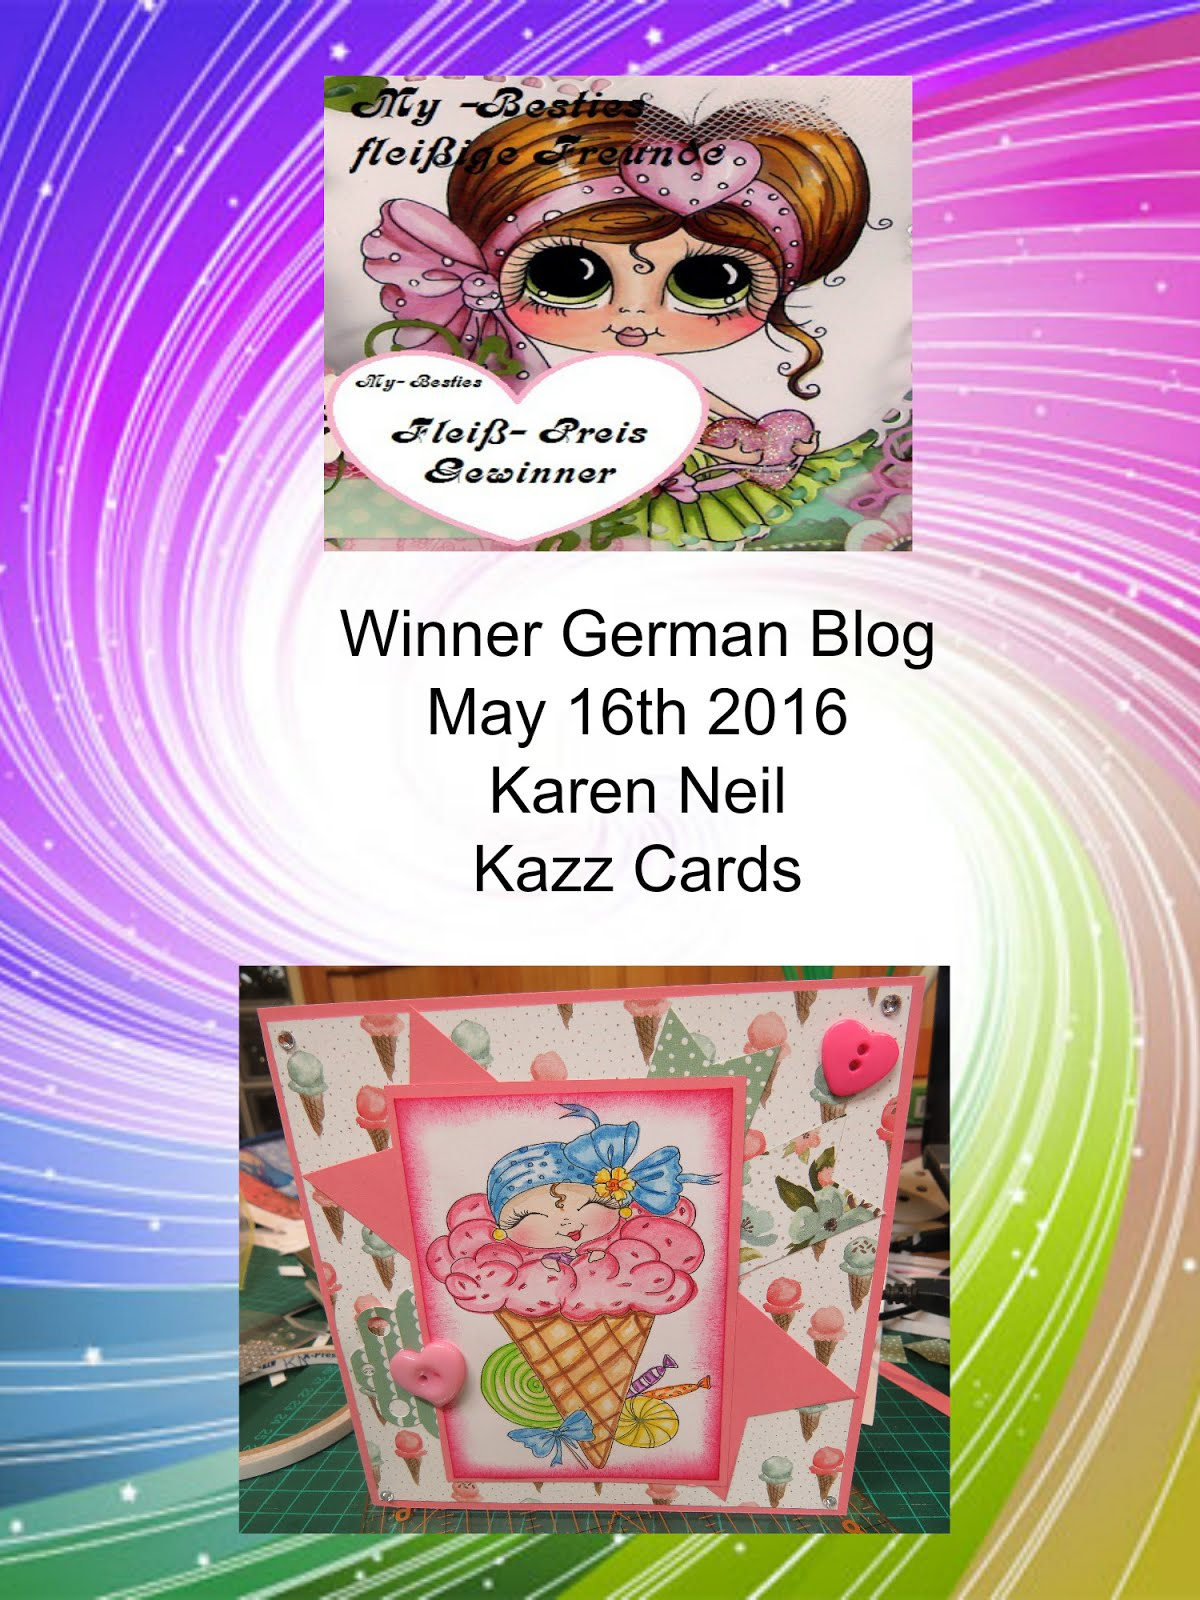 Winner German Blog